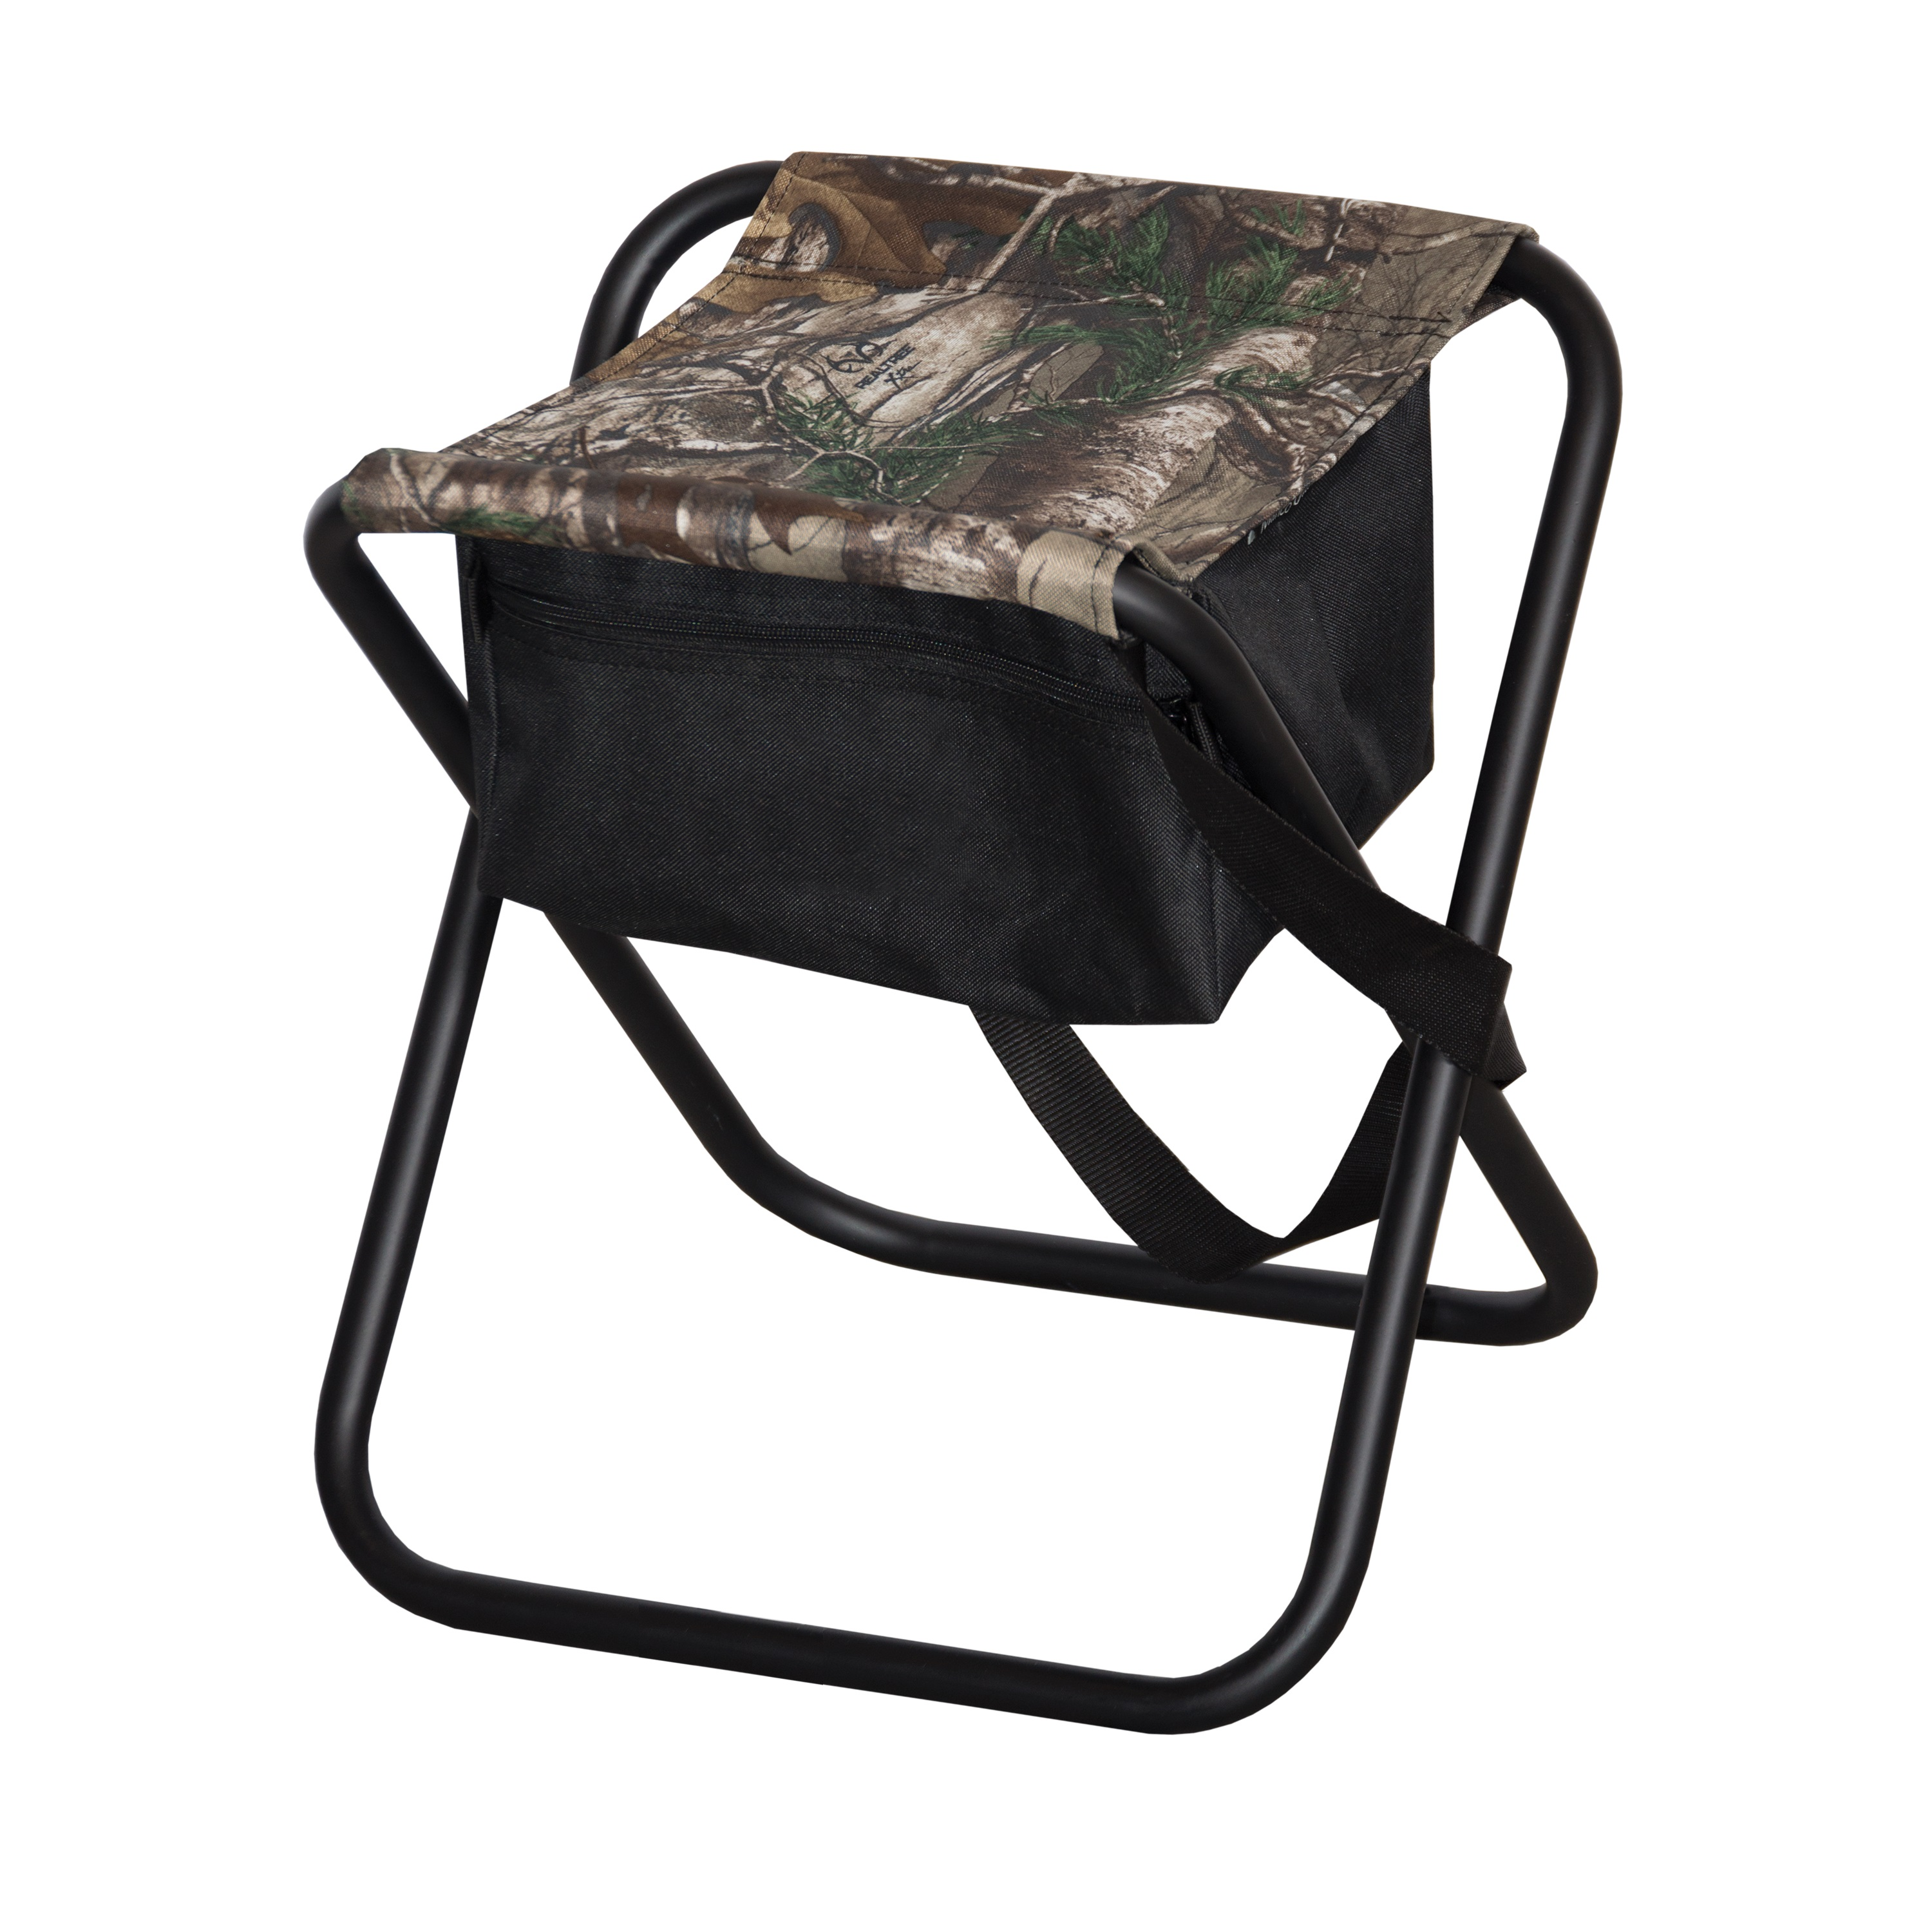 HUNTING STOOL REALTREE XTRA Walmart